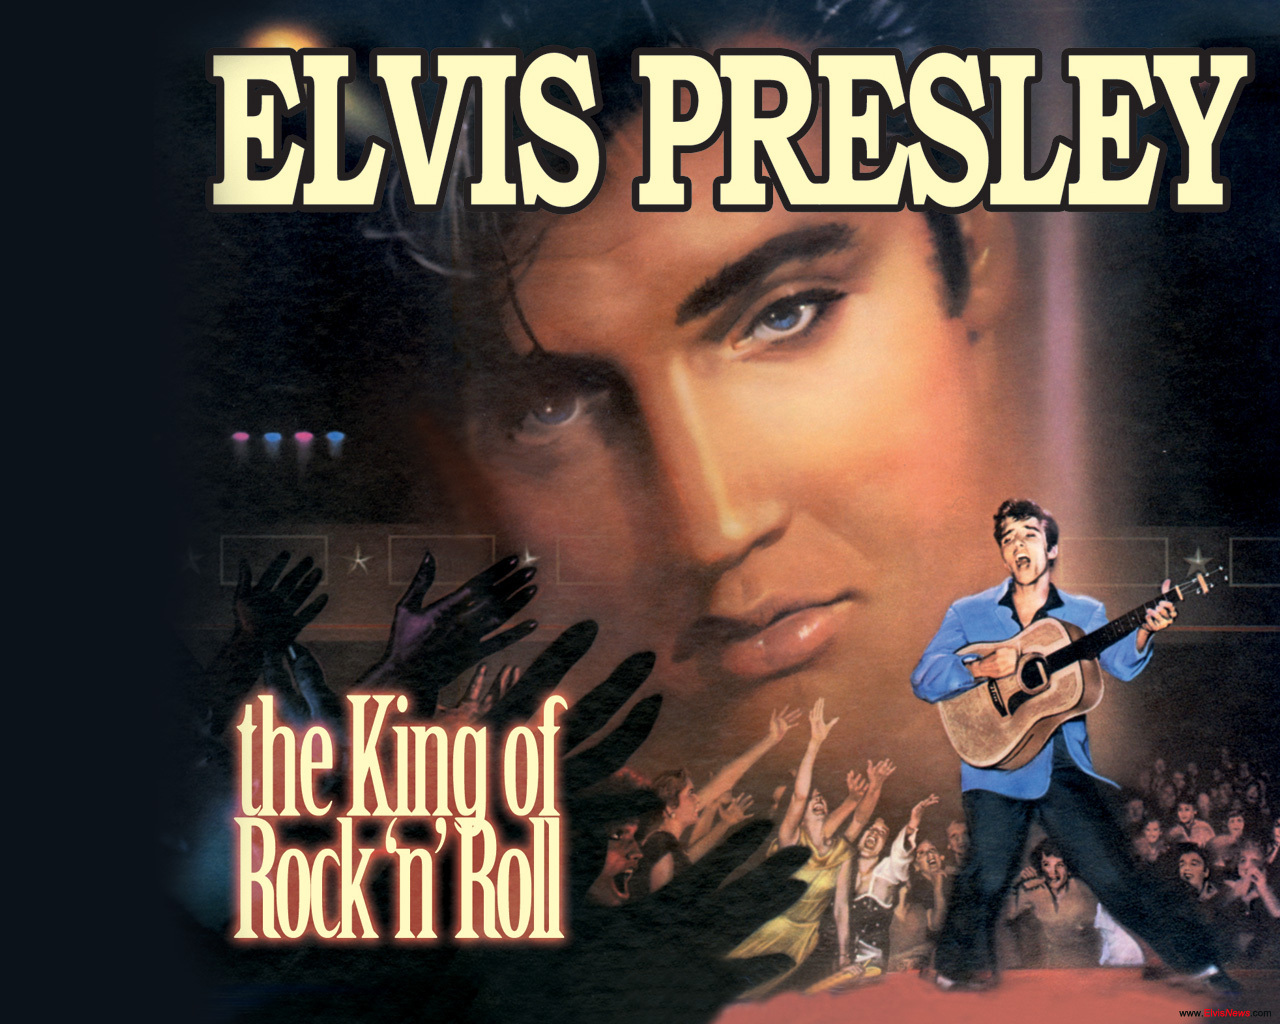 ELVIS PRESLEY — WHAT REALLY KILLED THE KING OF ROCK 'N ROLL